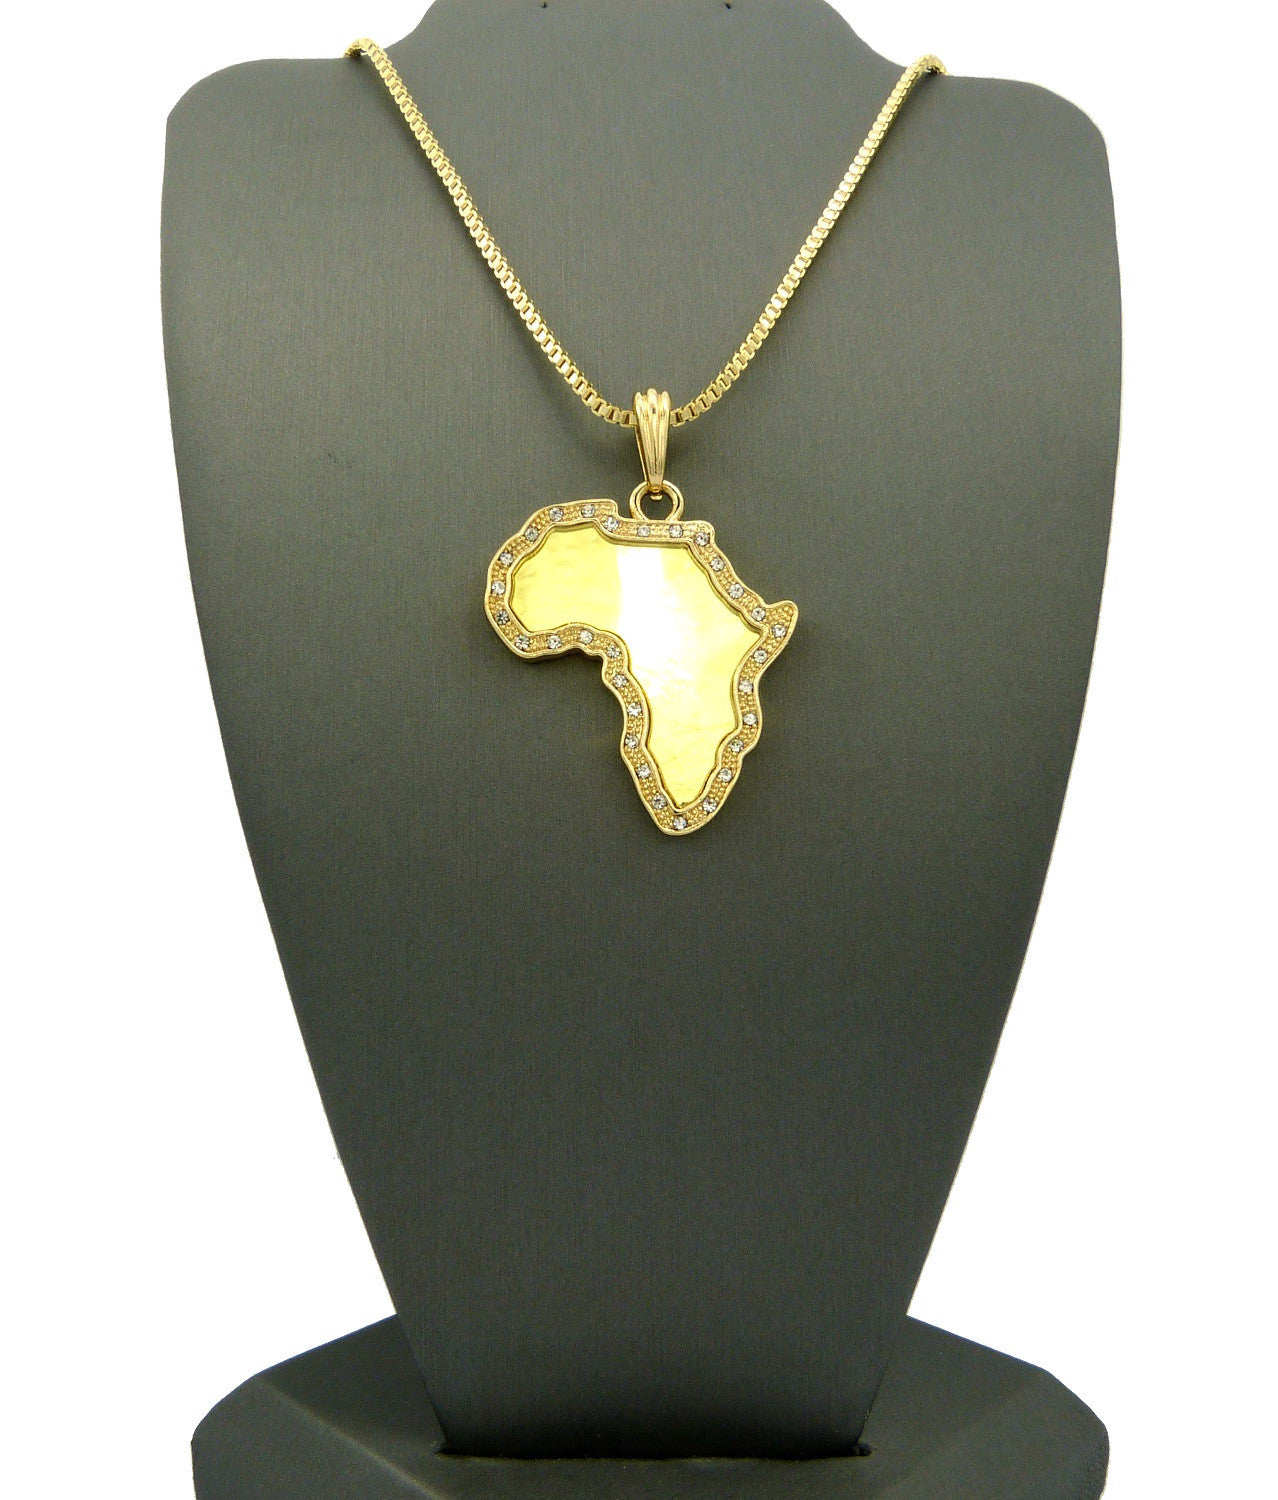 24k Gold Plated Africa Pendant